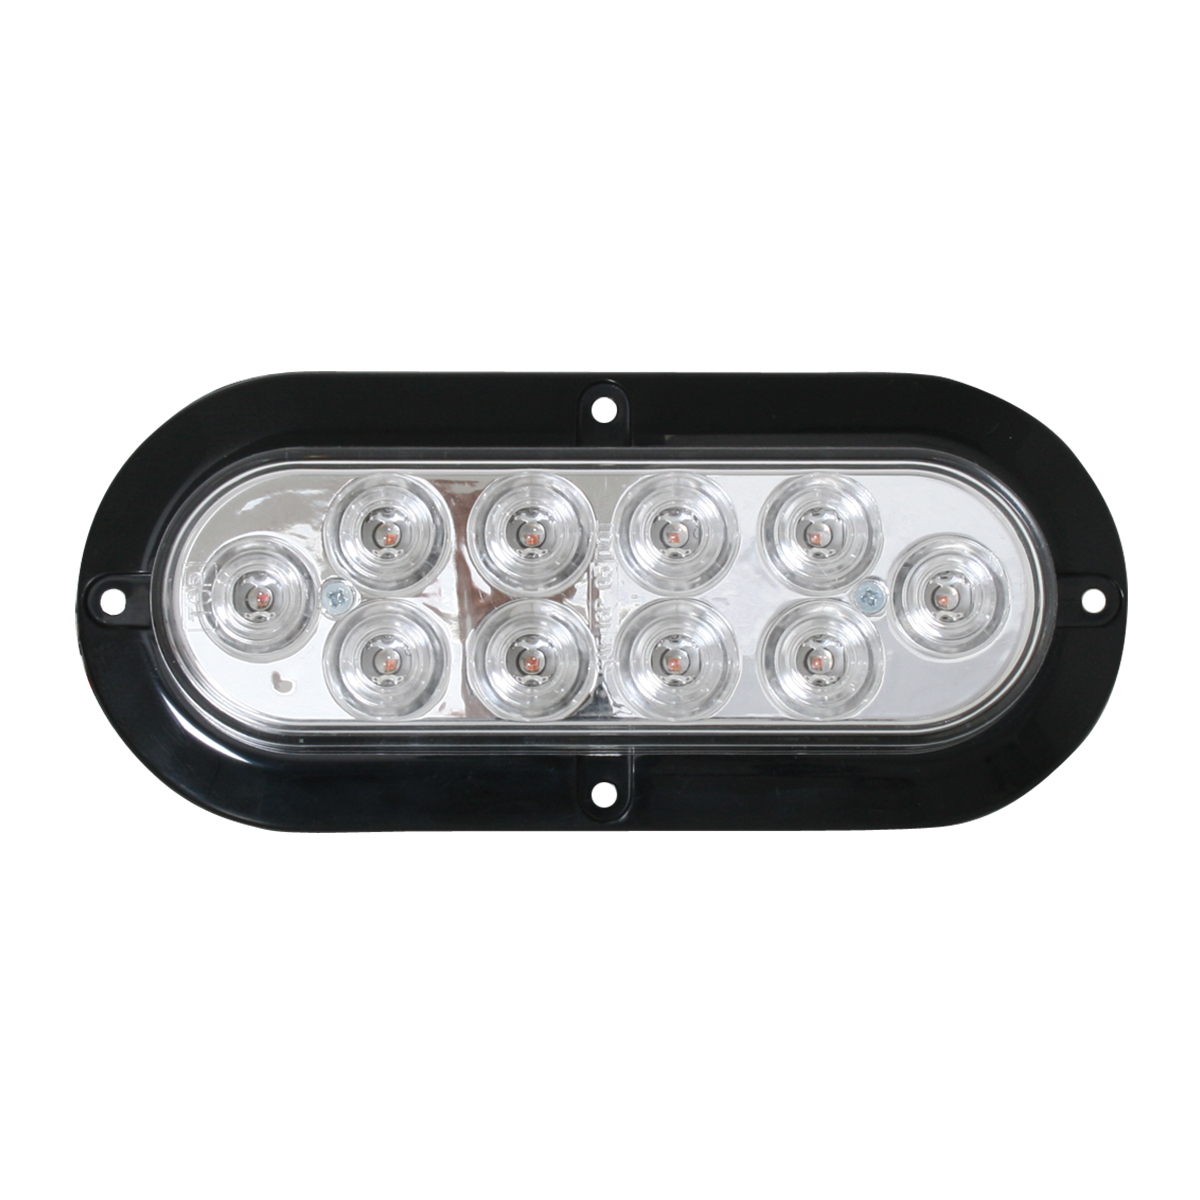 76871 Surface Mount Oval Mega 10 Plus LED Light